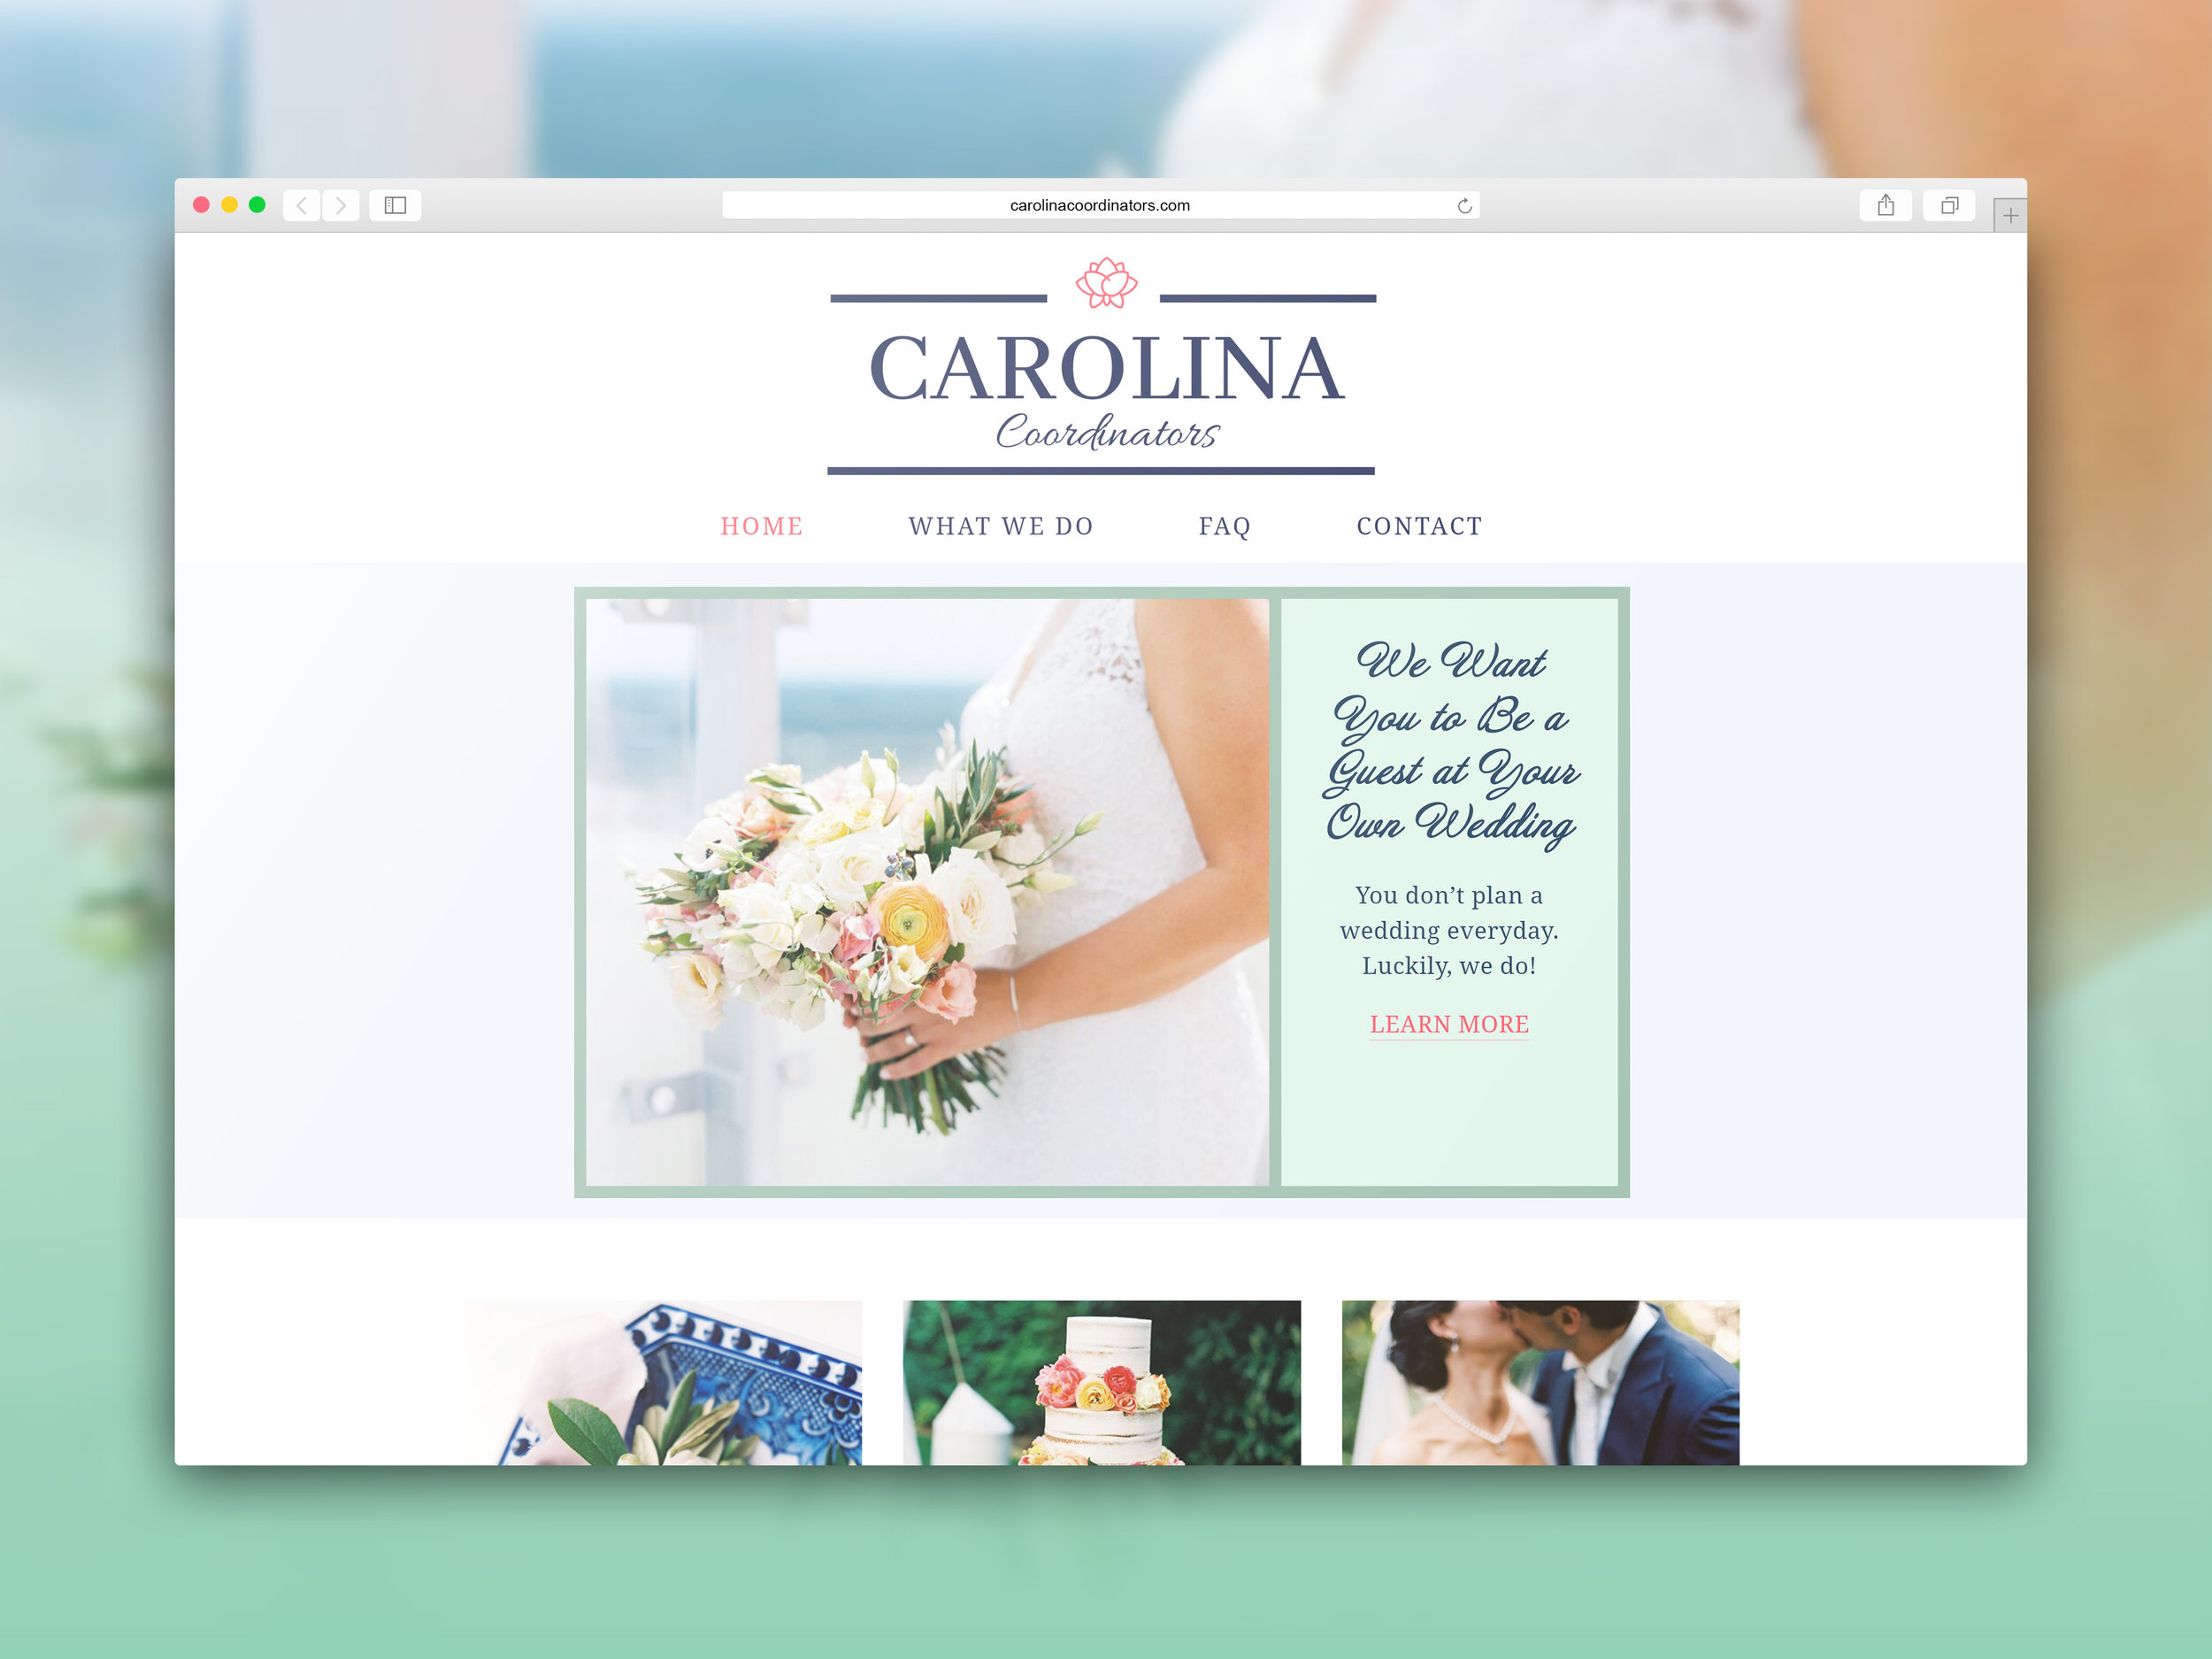 websitemockup-carolinacoordinators.jpg